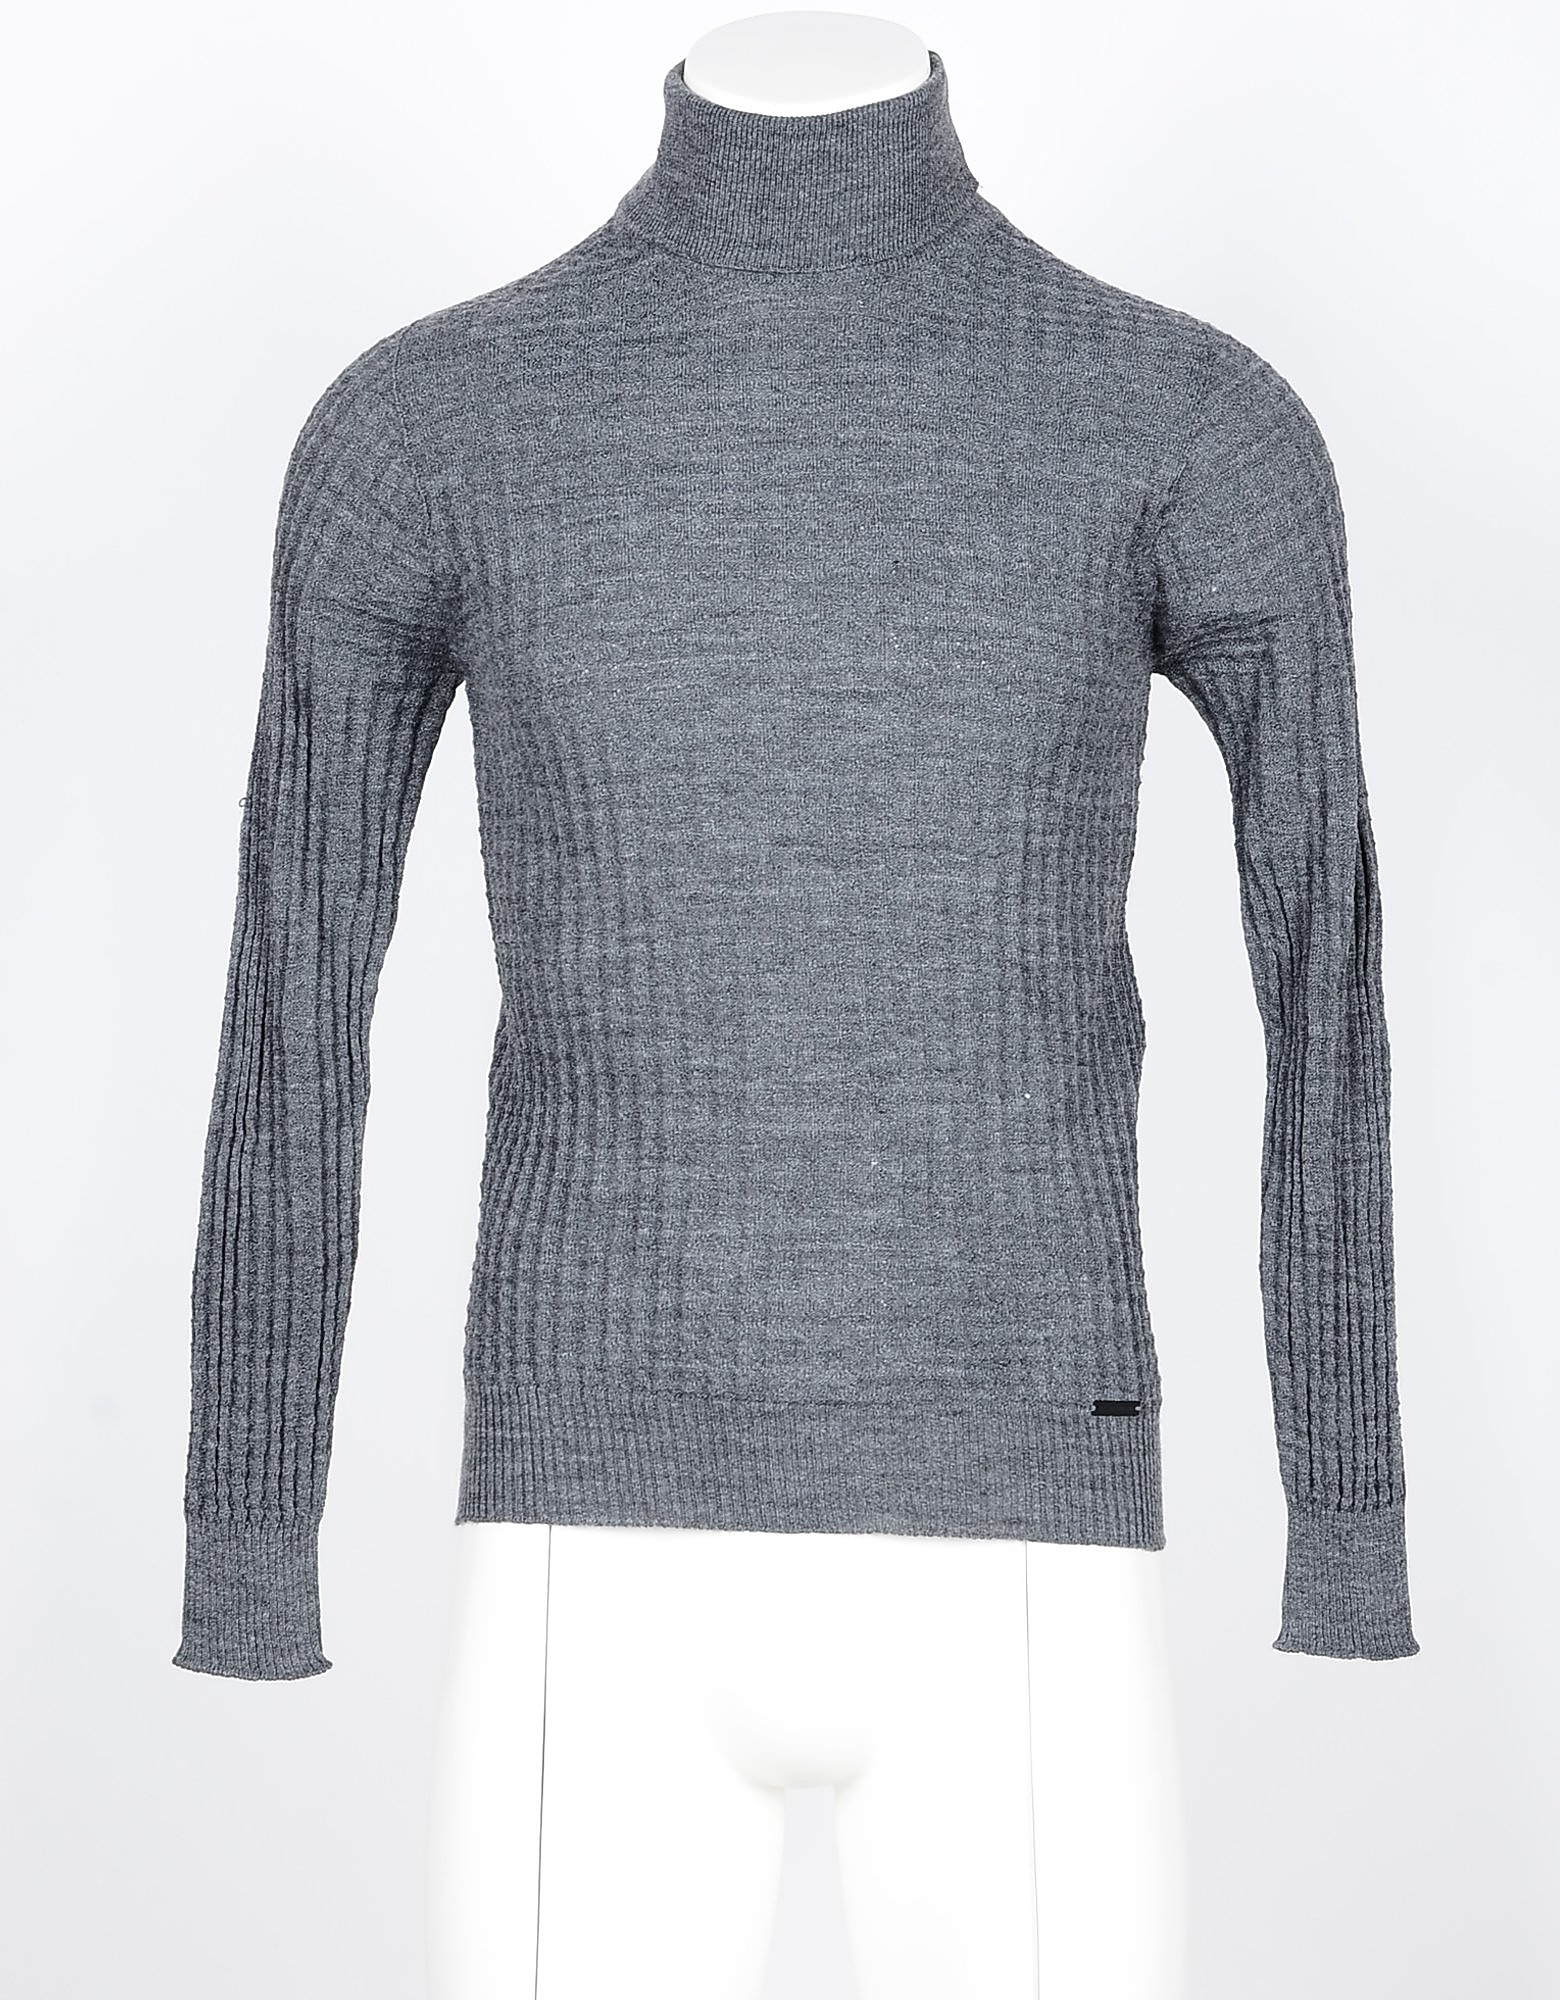 Takeshy Kurosawa Designer Knitwear, Gray Blue Men's Turtleneck Sweater